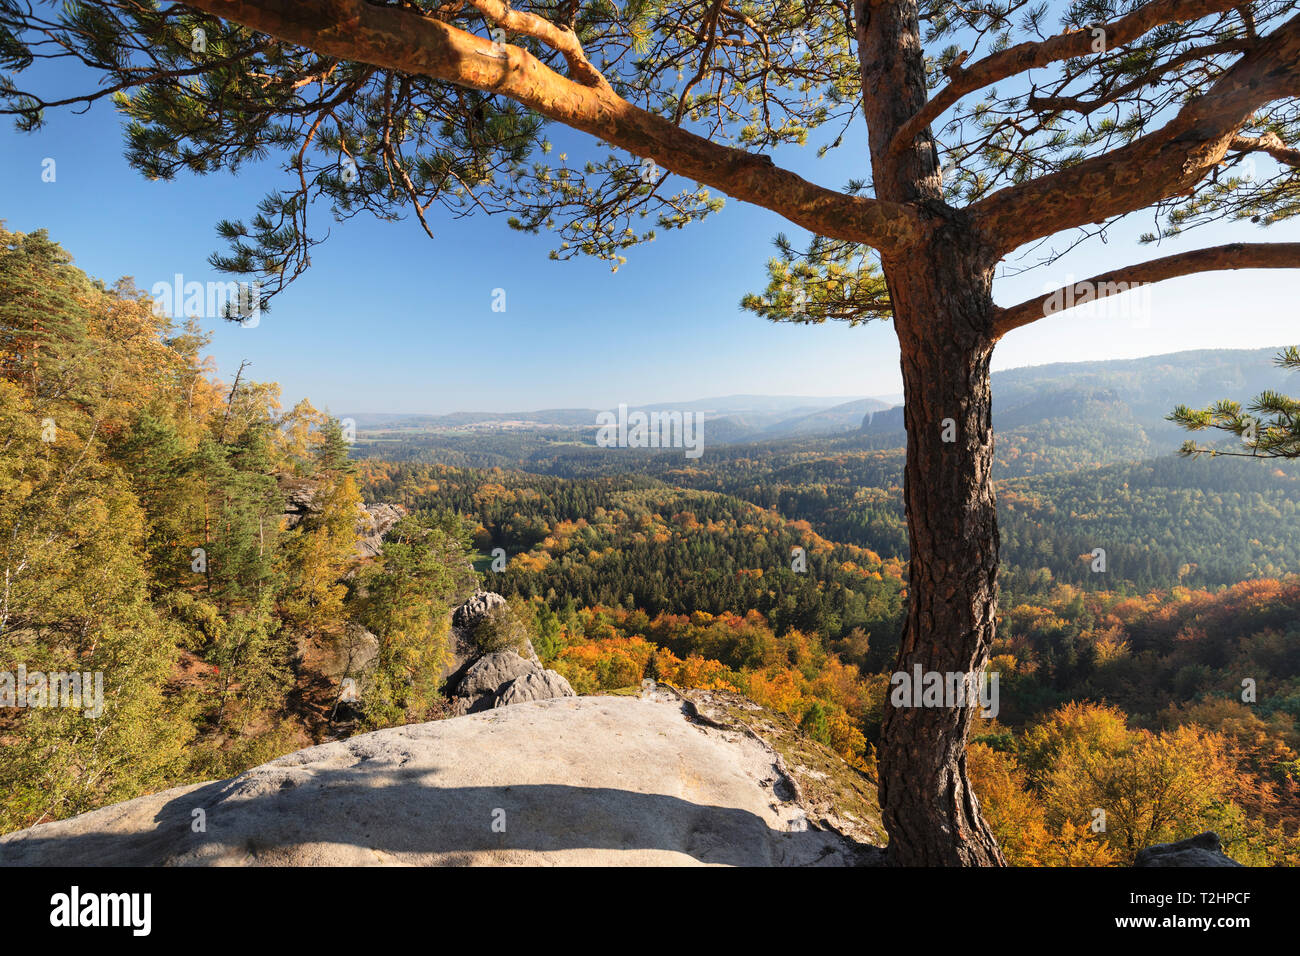 View from Schrammsteine rocks to Hohe Liebe mountain in Elbe Sandstone Mountains, Germany, Europe - Stock Image